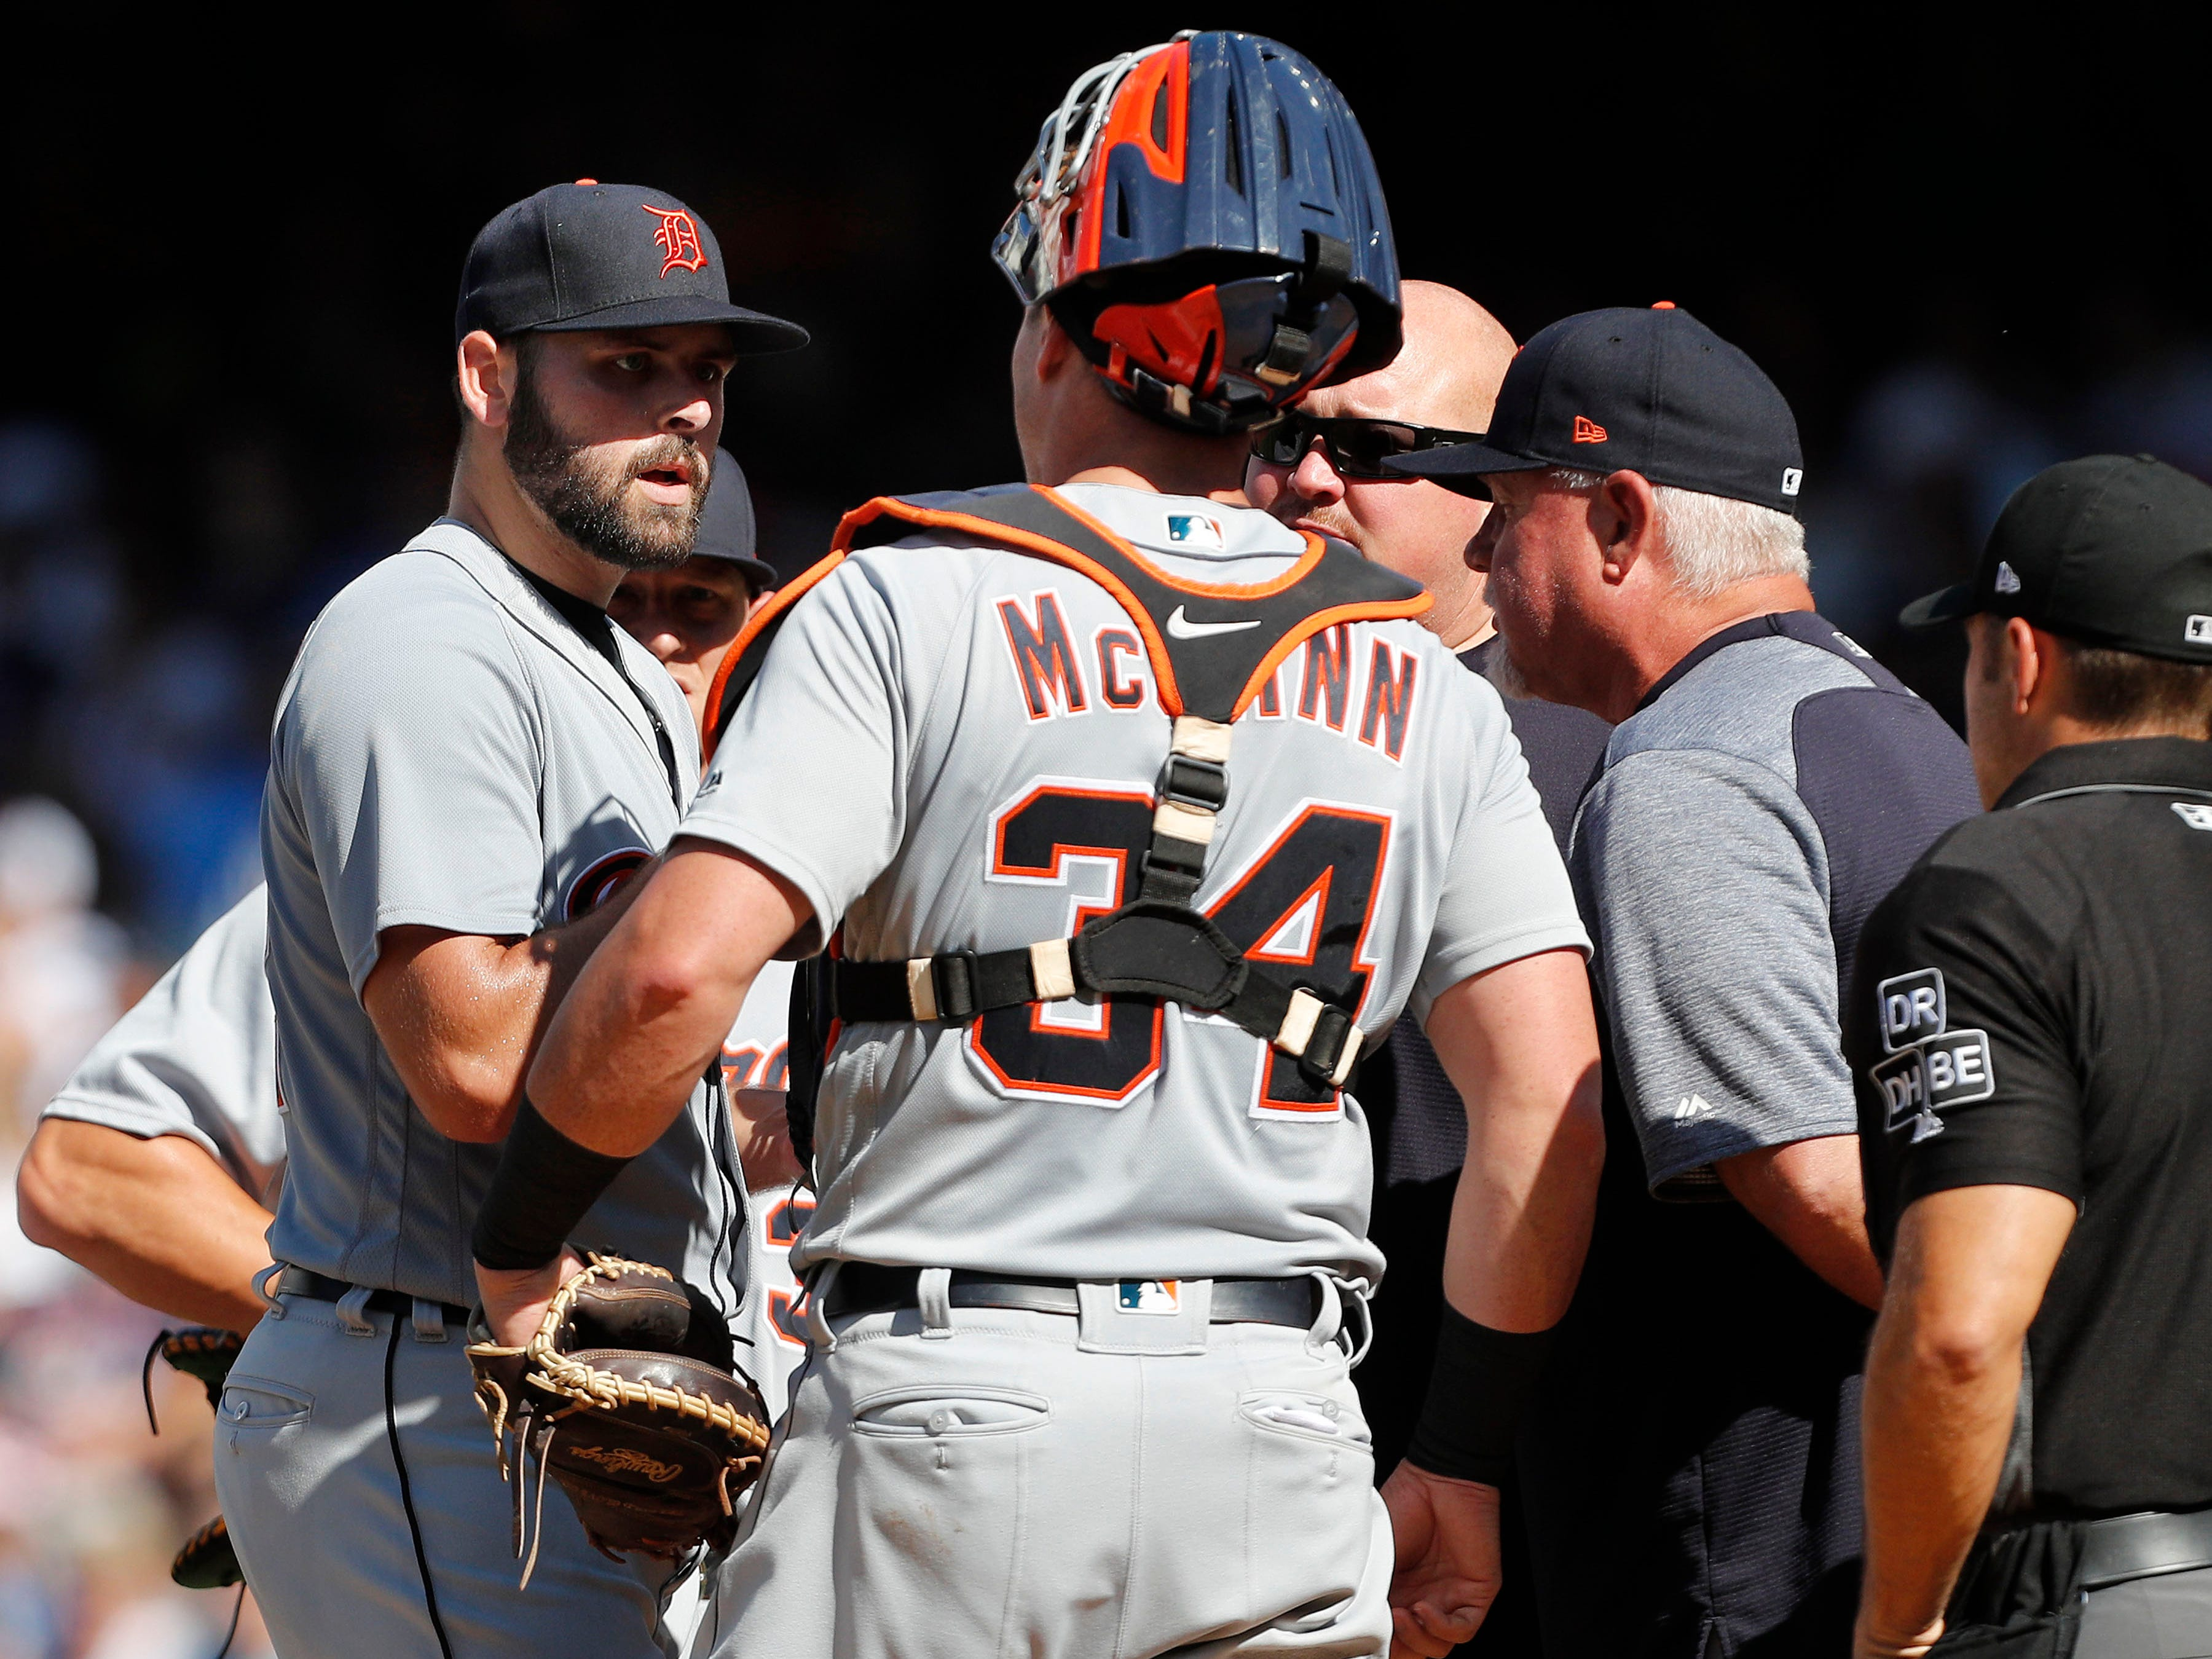 Tigers pitcher Michael Fulmer talks with catcher James McCann and manager Ron Gardenhire before leaving the game during the first inning on Saturday, Sept.15, 2018, in Cleveland.